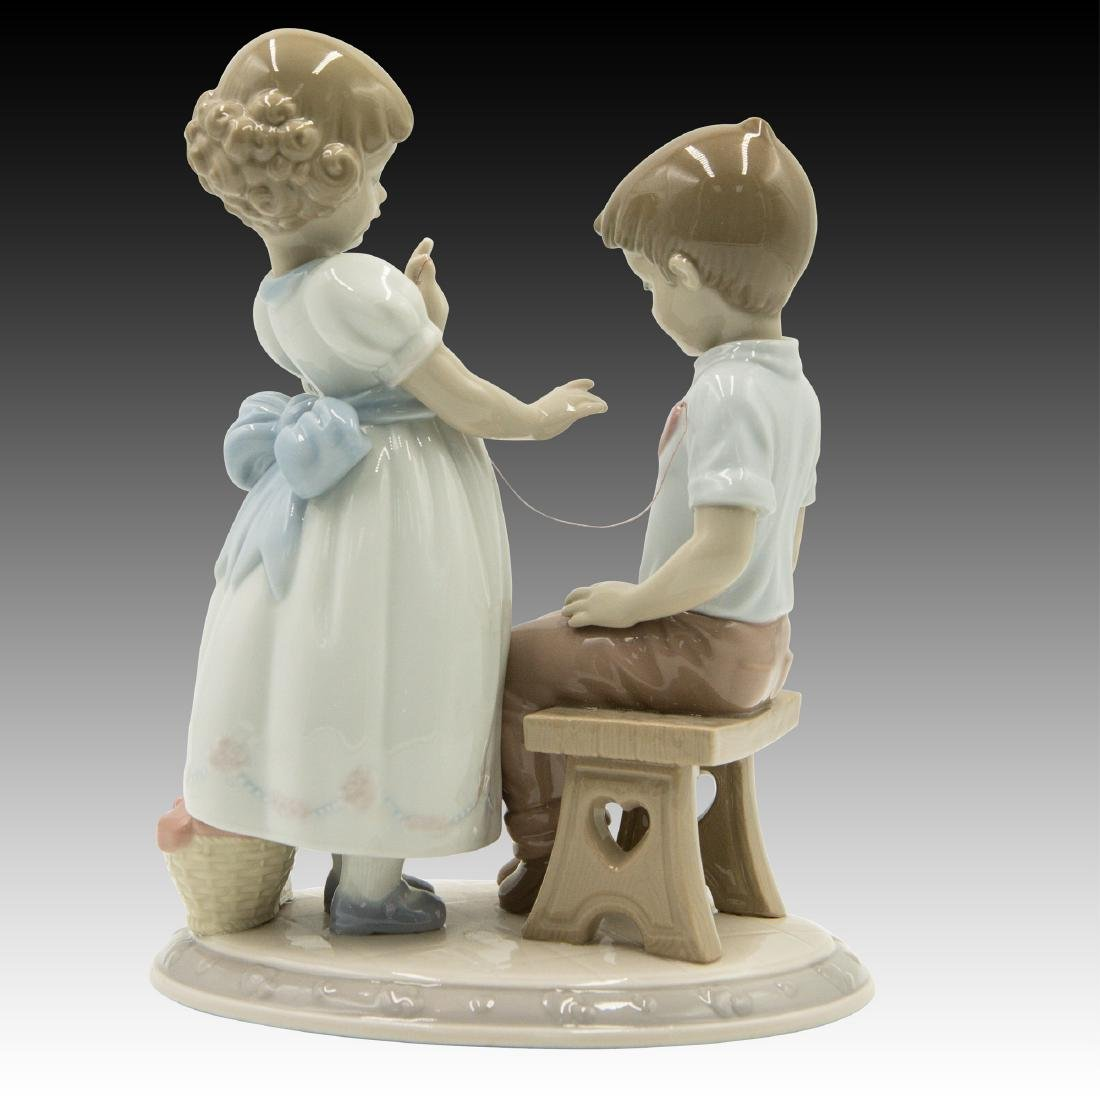 LLADRO WITH ALL MY HEART FIGURINE 6906 RETIRED - 2